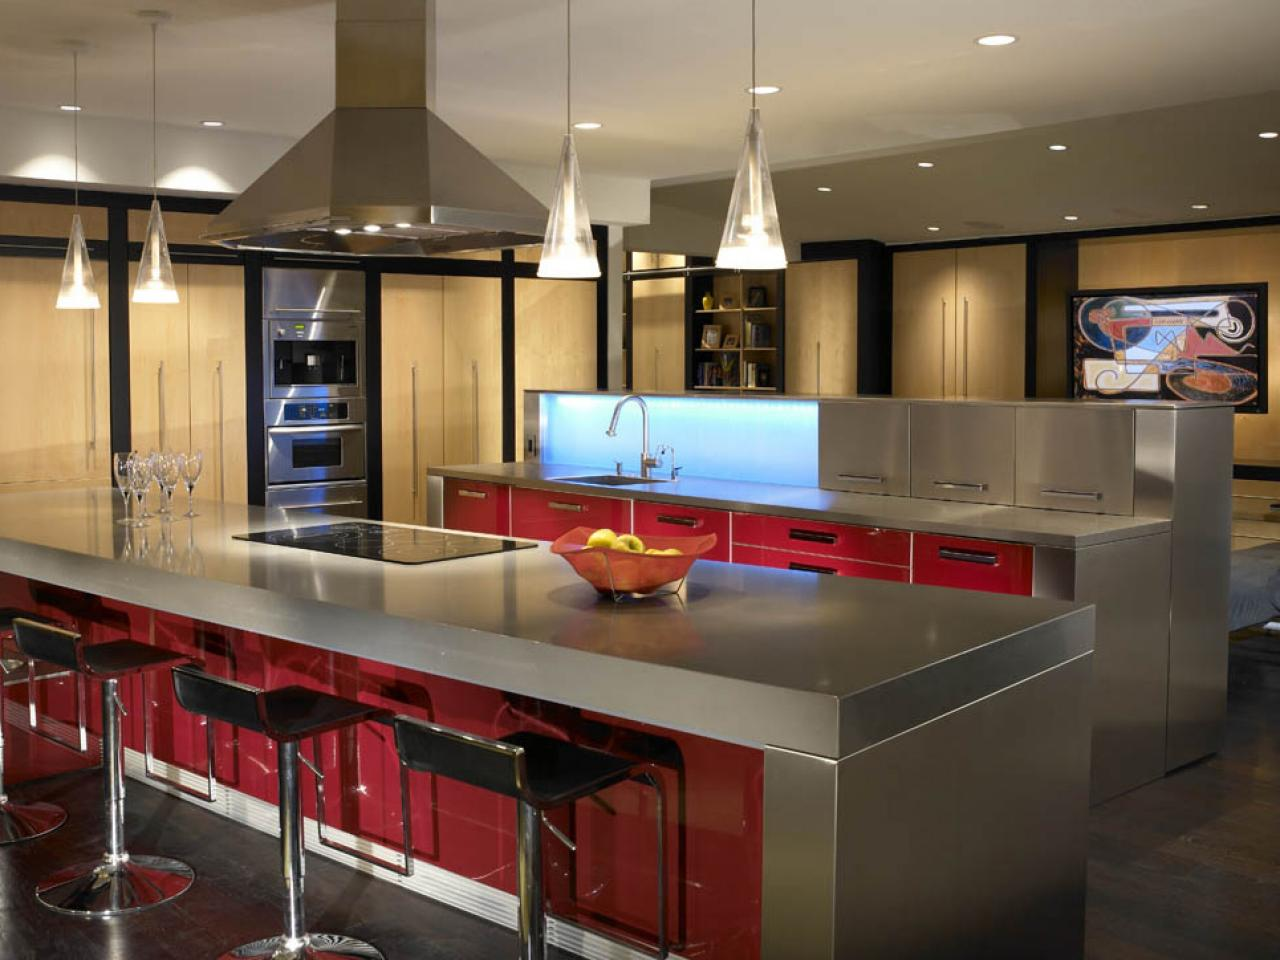 amazing kitchens kitchen ideas design with cabinets islands backsplashes hgtv